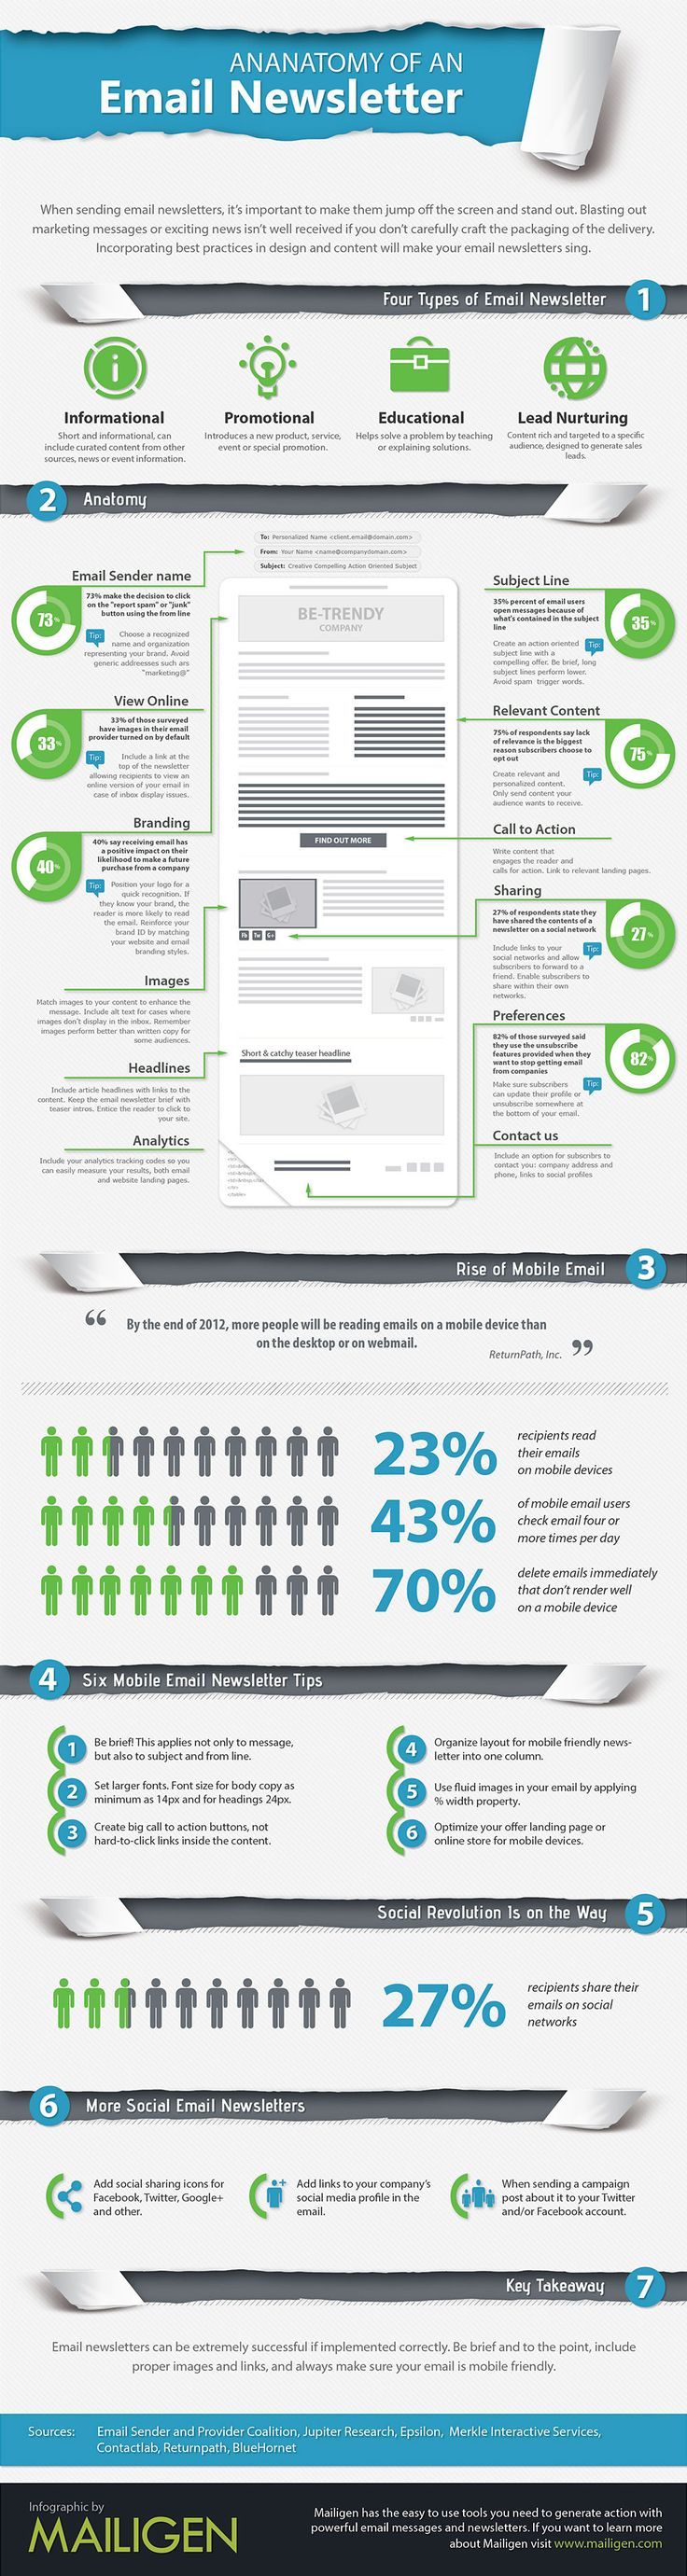 Anatomy of an e-mail newsletter. By http://mailigen.com